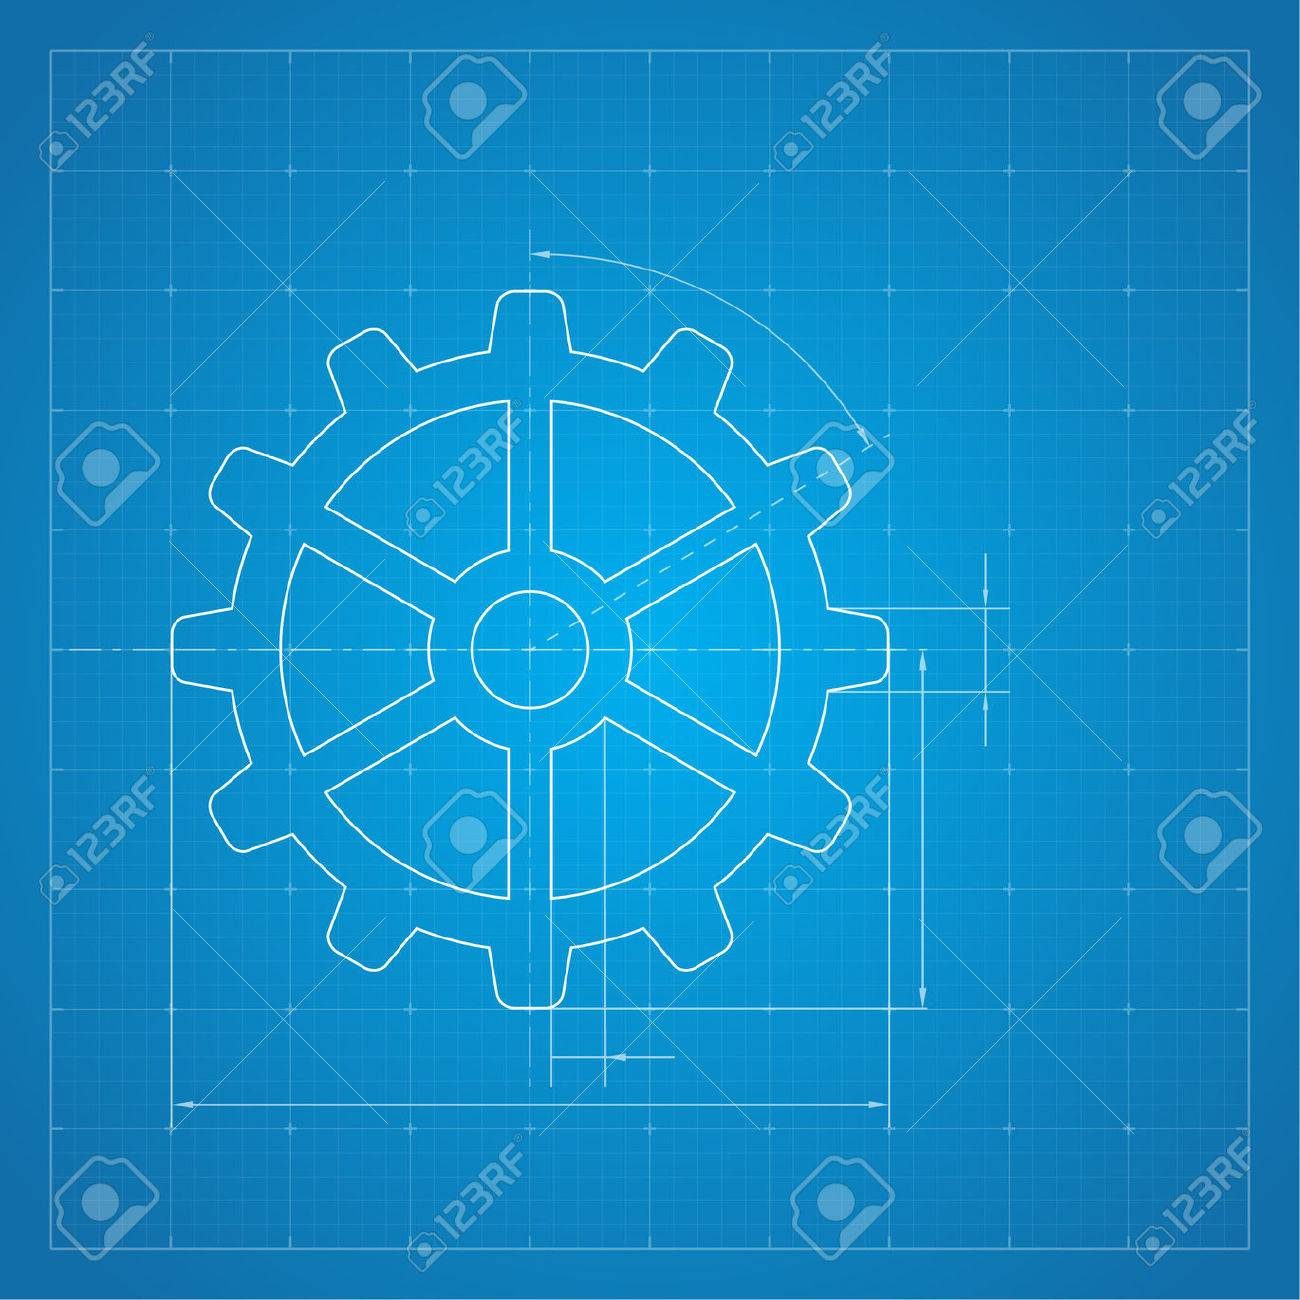 Paper blueprint background gears symbol on the drawing paper paper blueprint background gears symbol on the drawing paper concept of motion and mechanics malvernweather Images